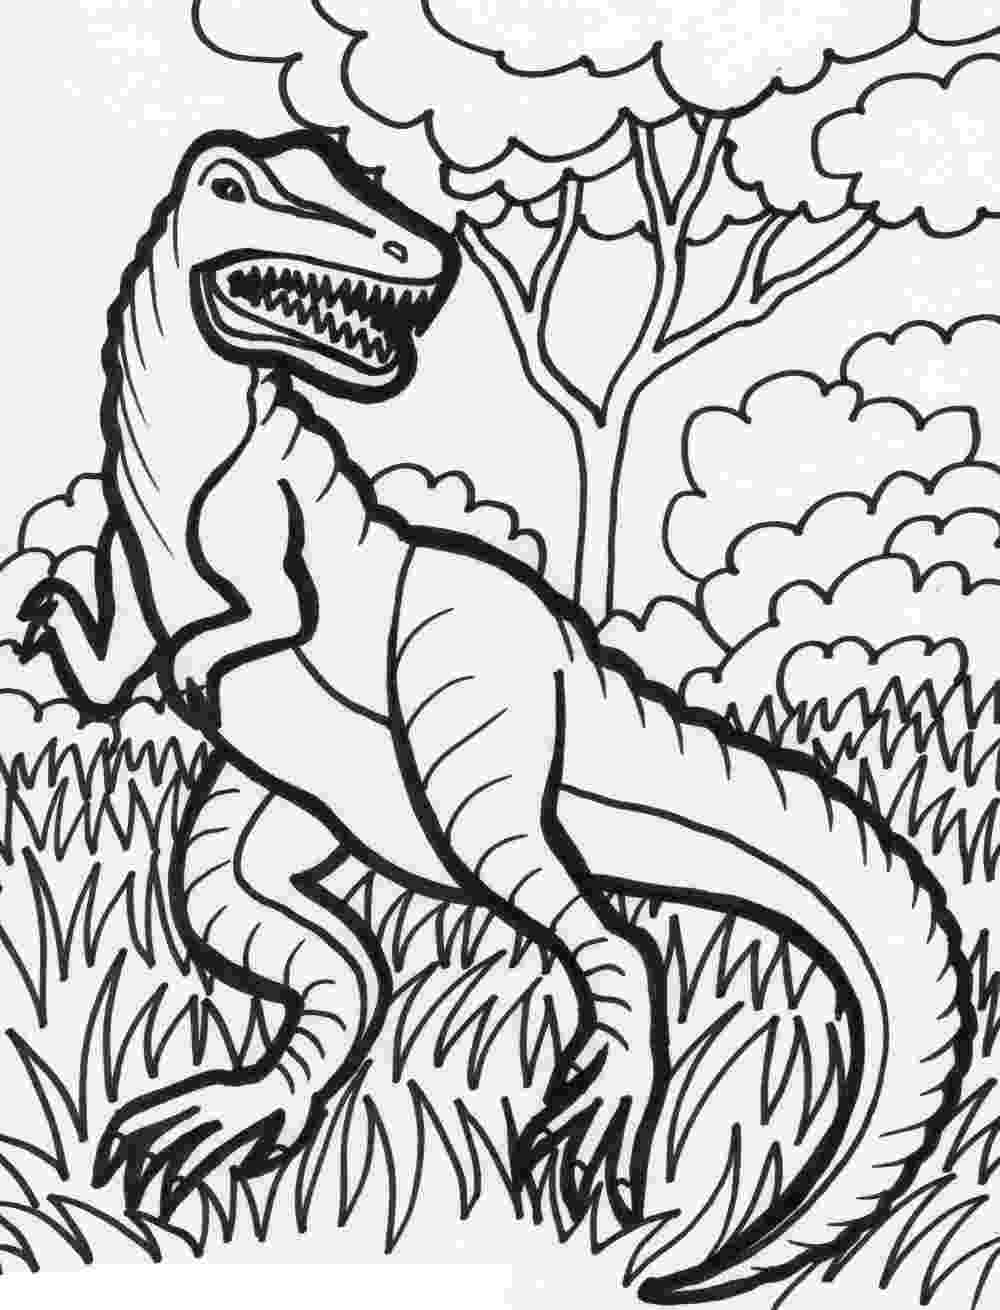 dinosaur coloring pages free printable free printable dinosaur coloring pages for kids dinosaur coloring pages printable free